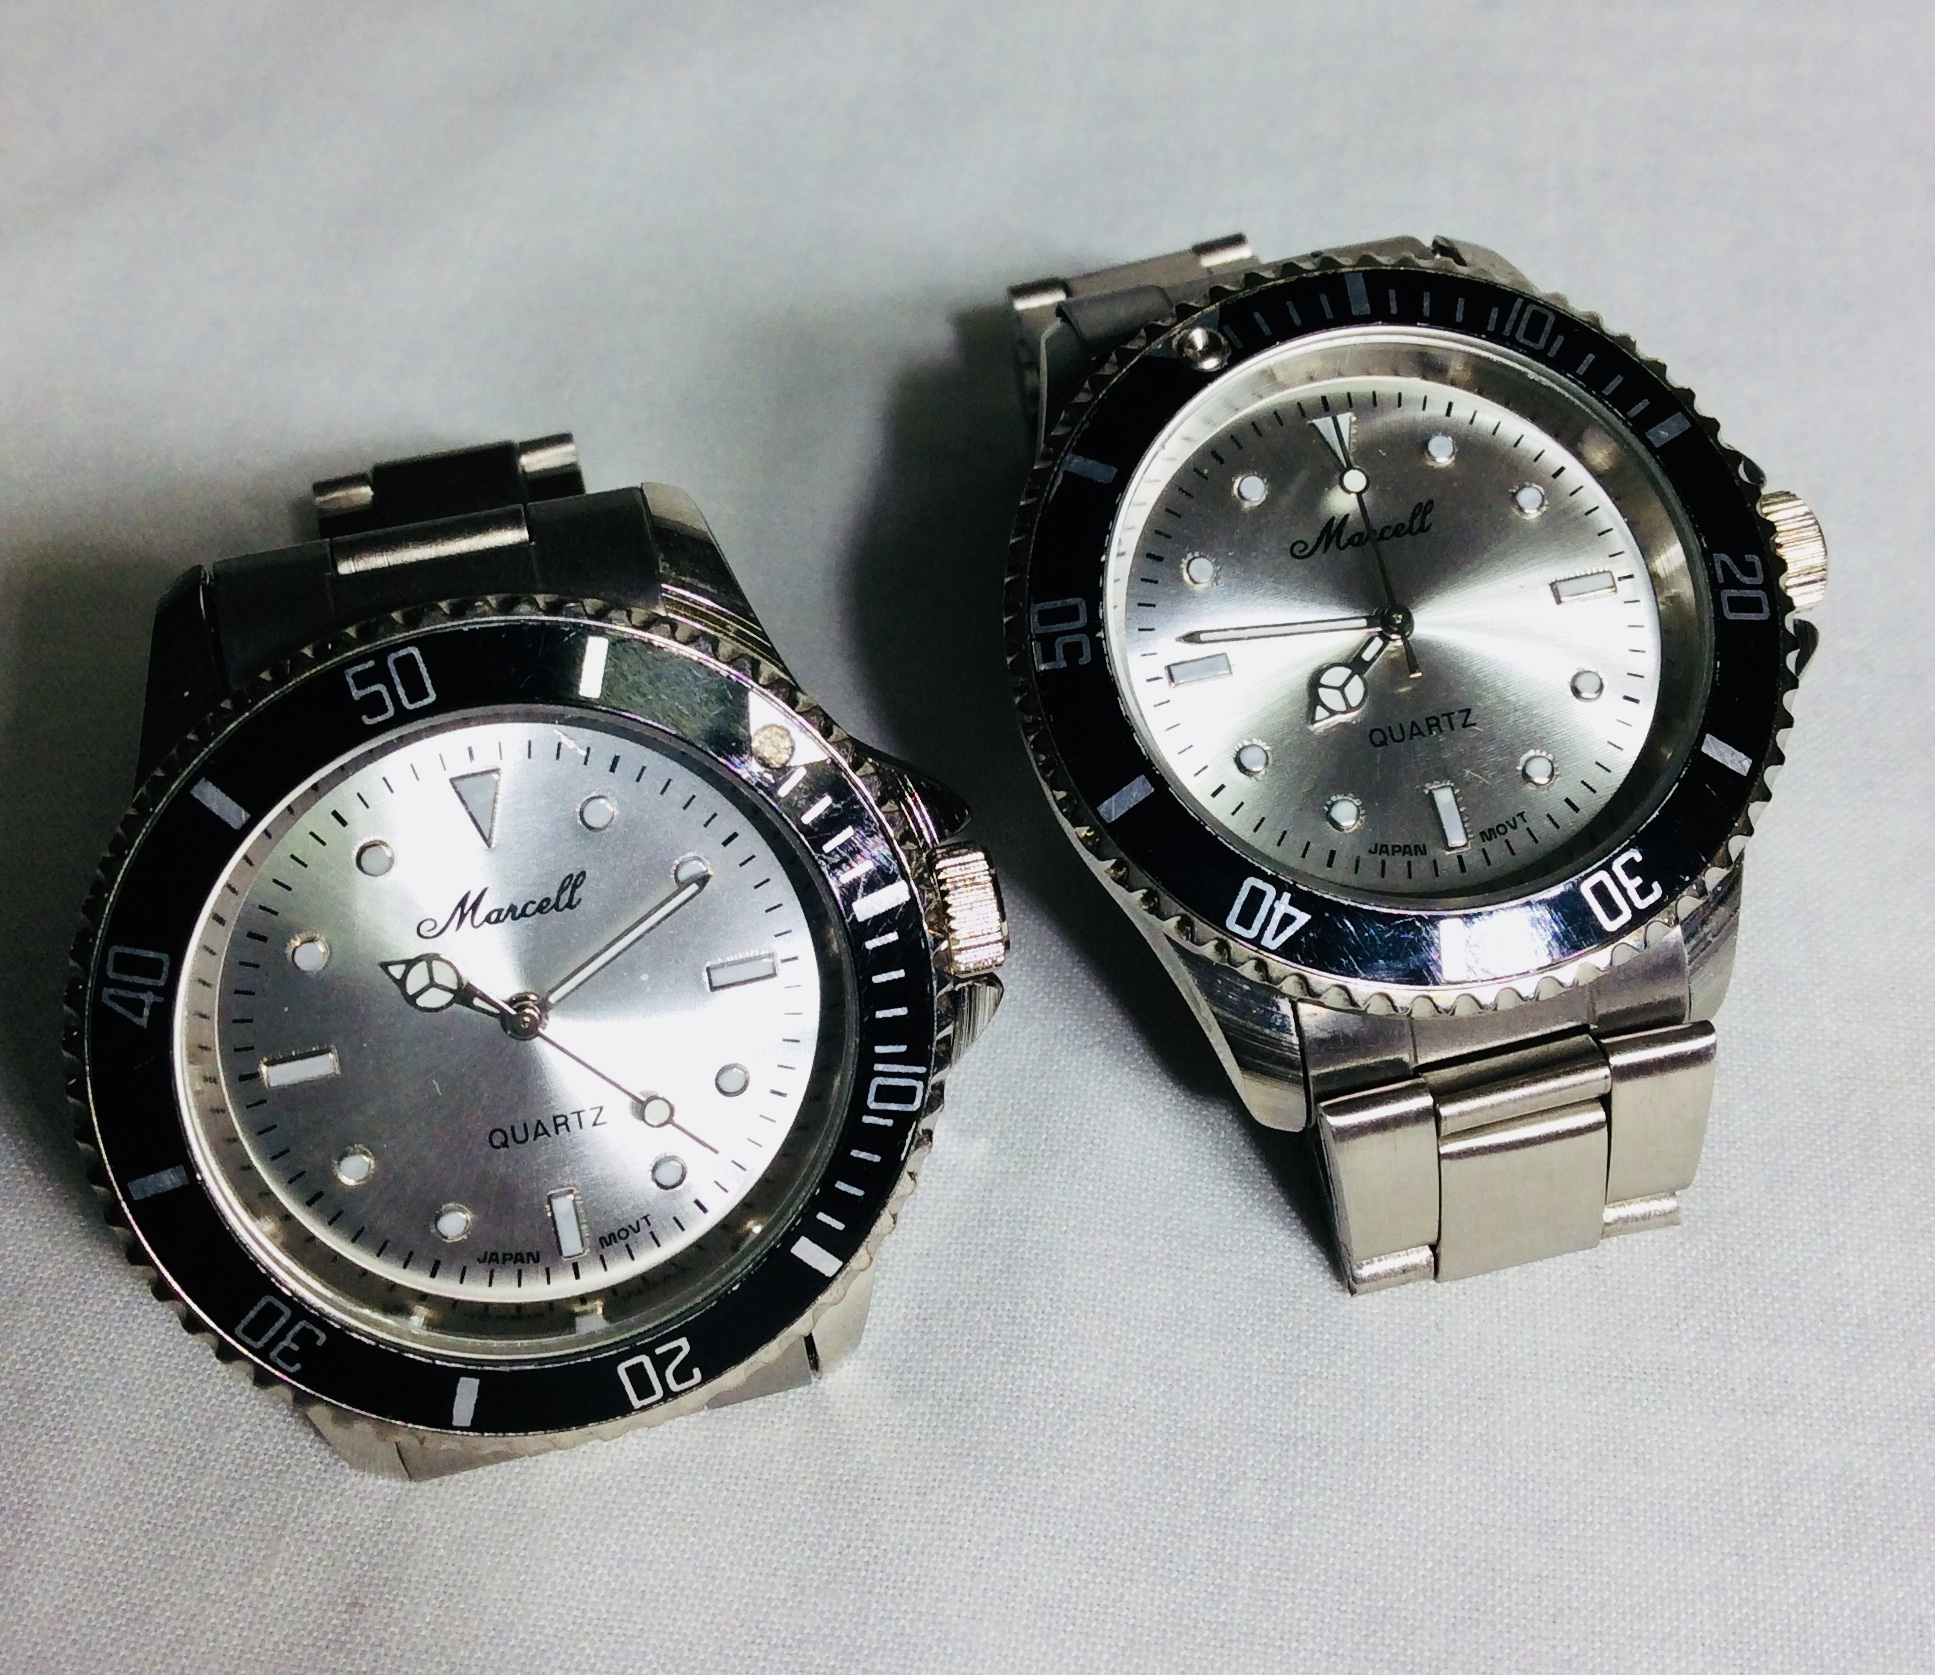 Marcell silver watch